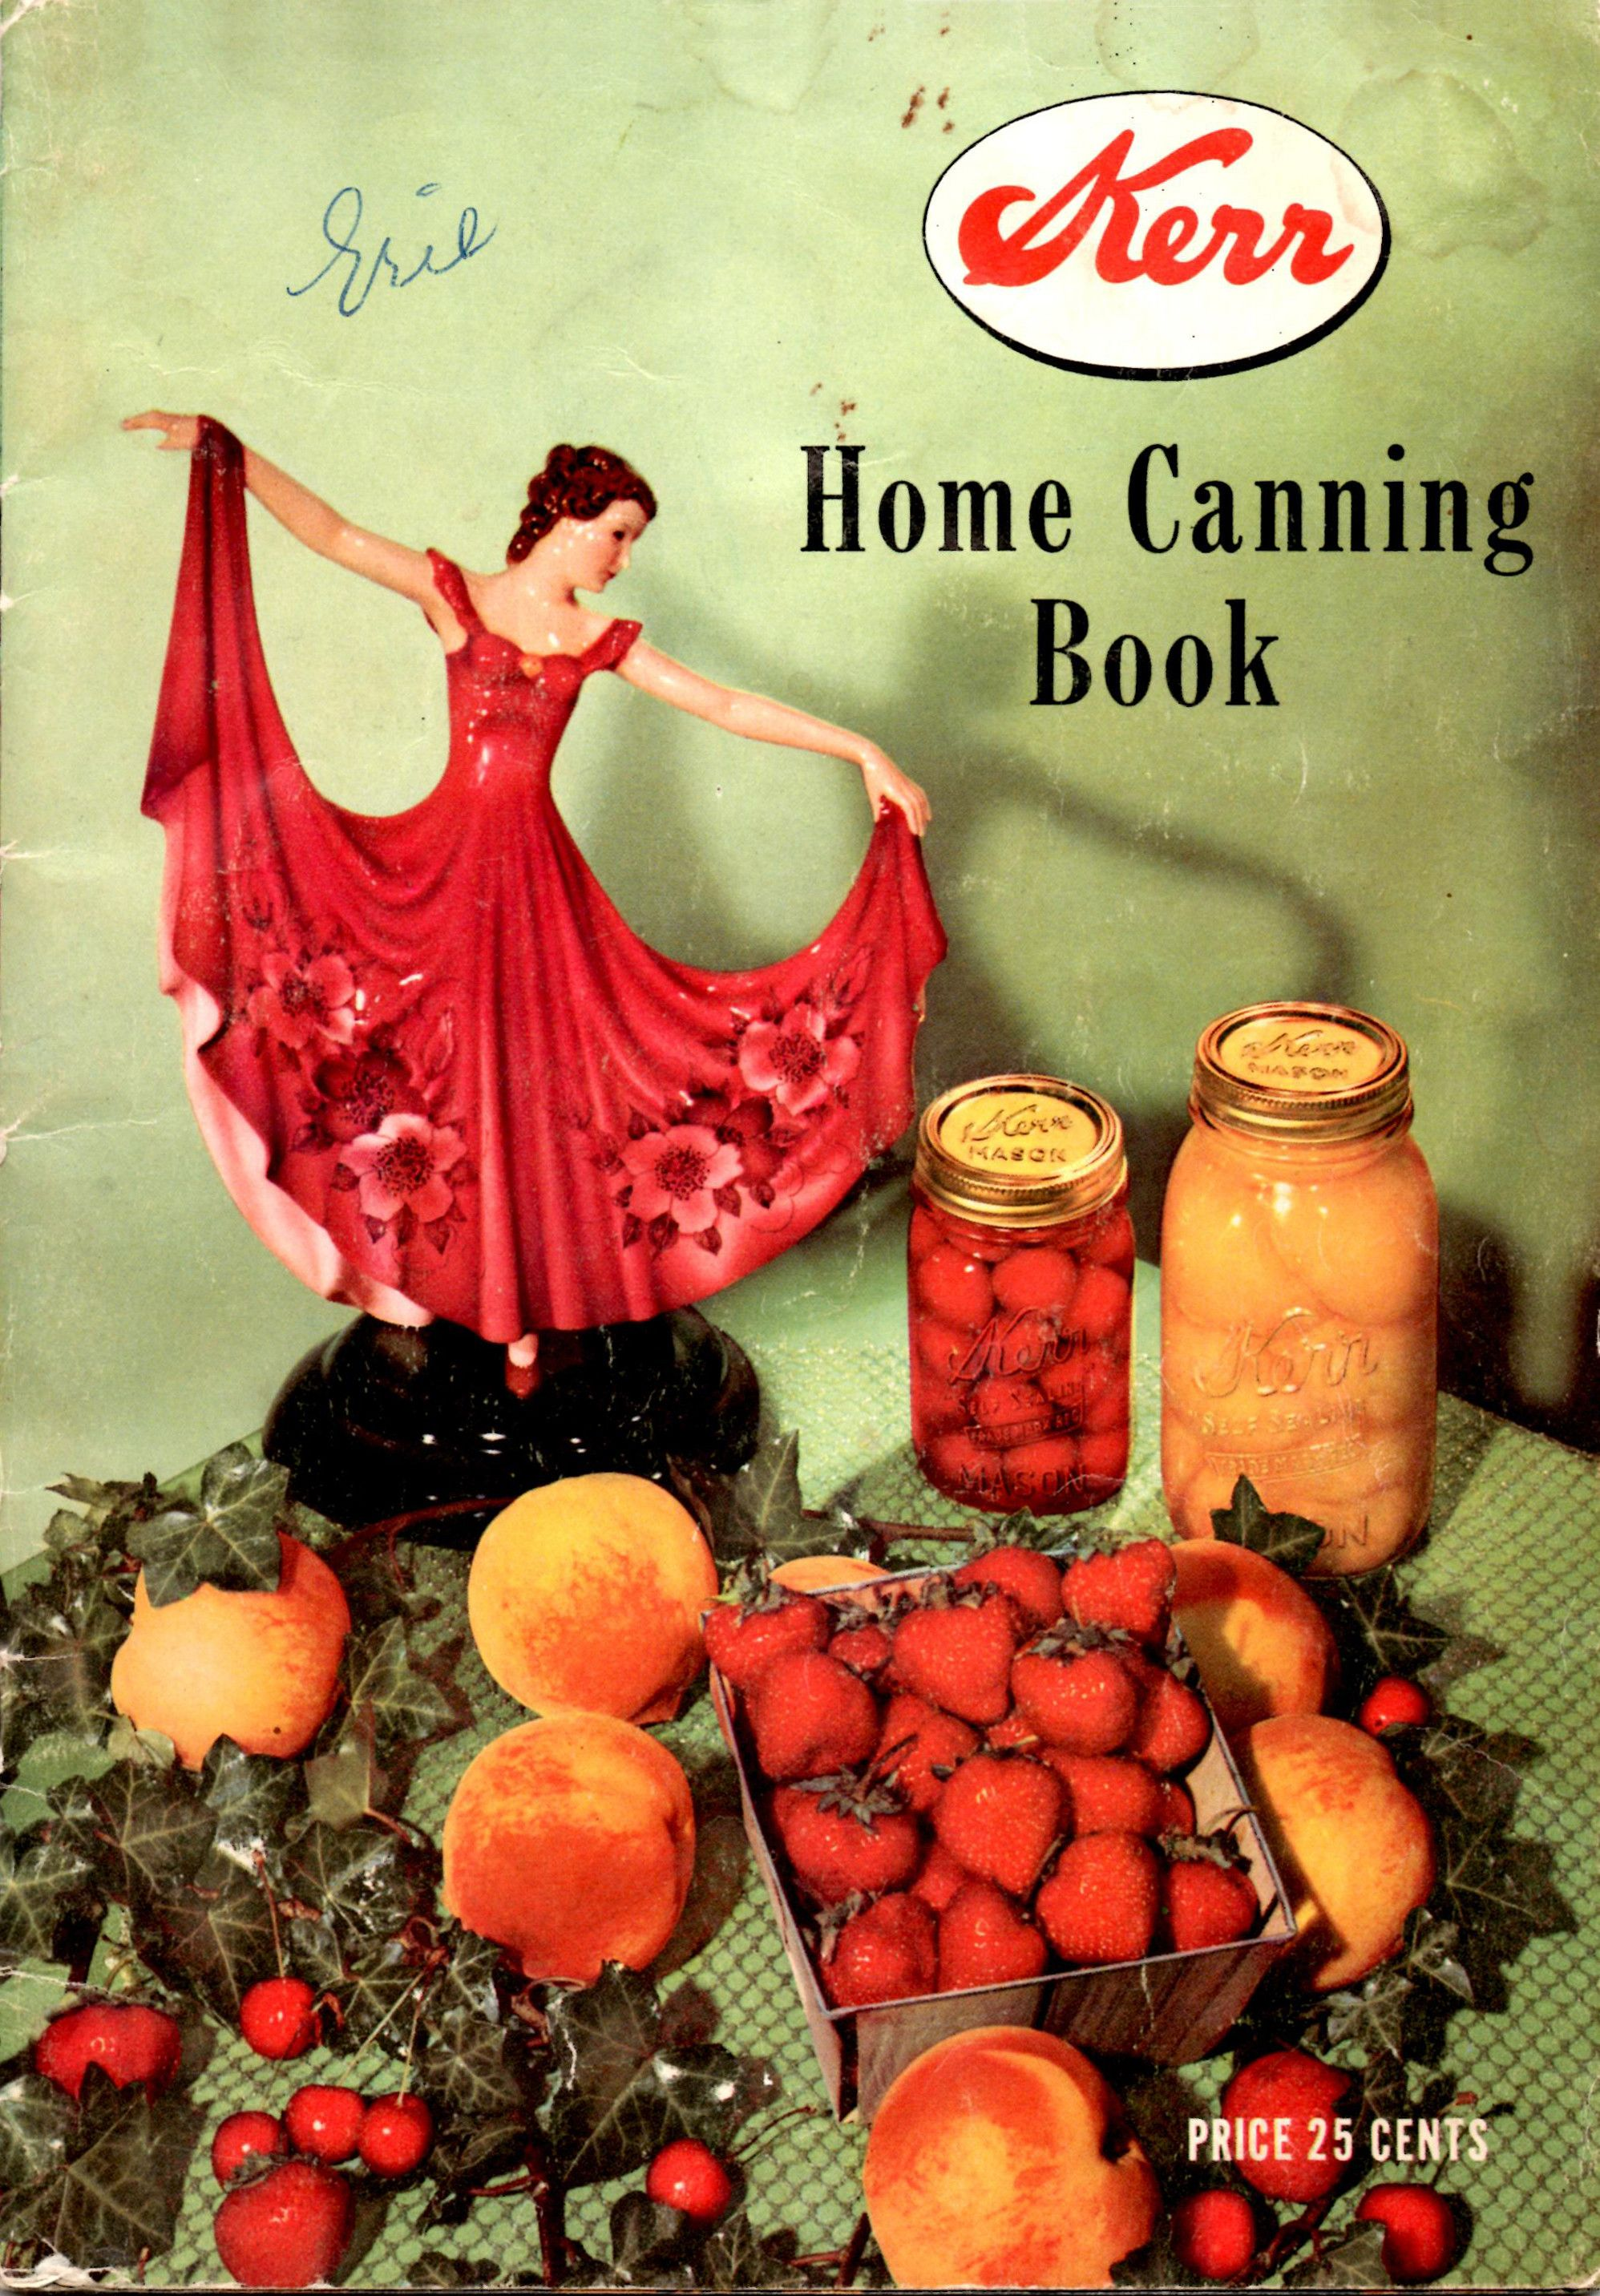 Kerr Home Canning Book in 2020 Home canning, Canning